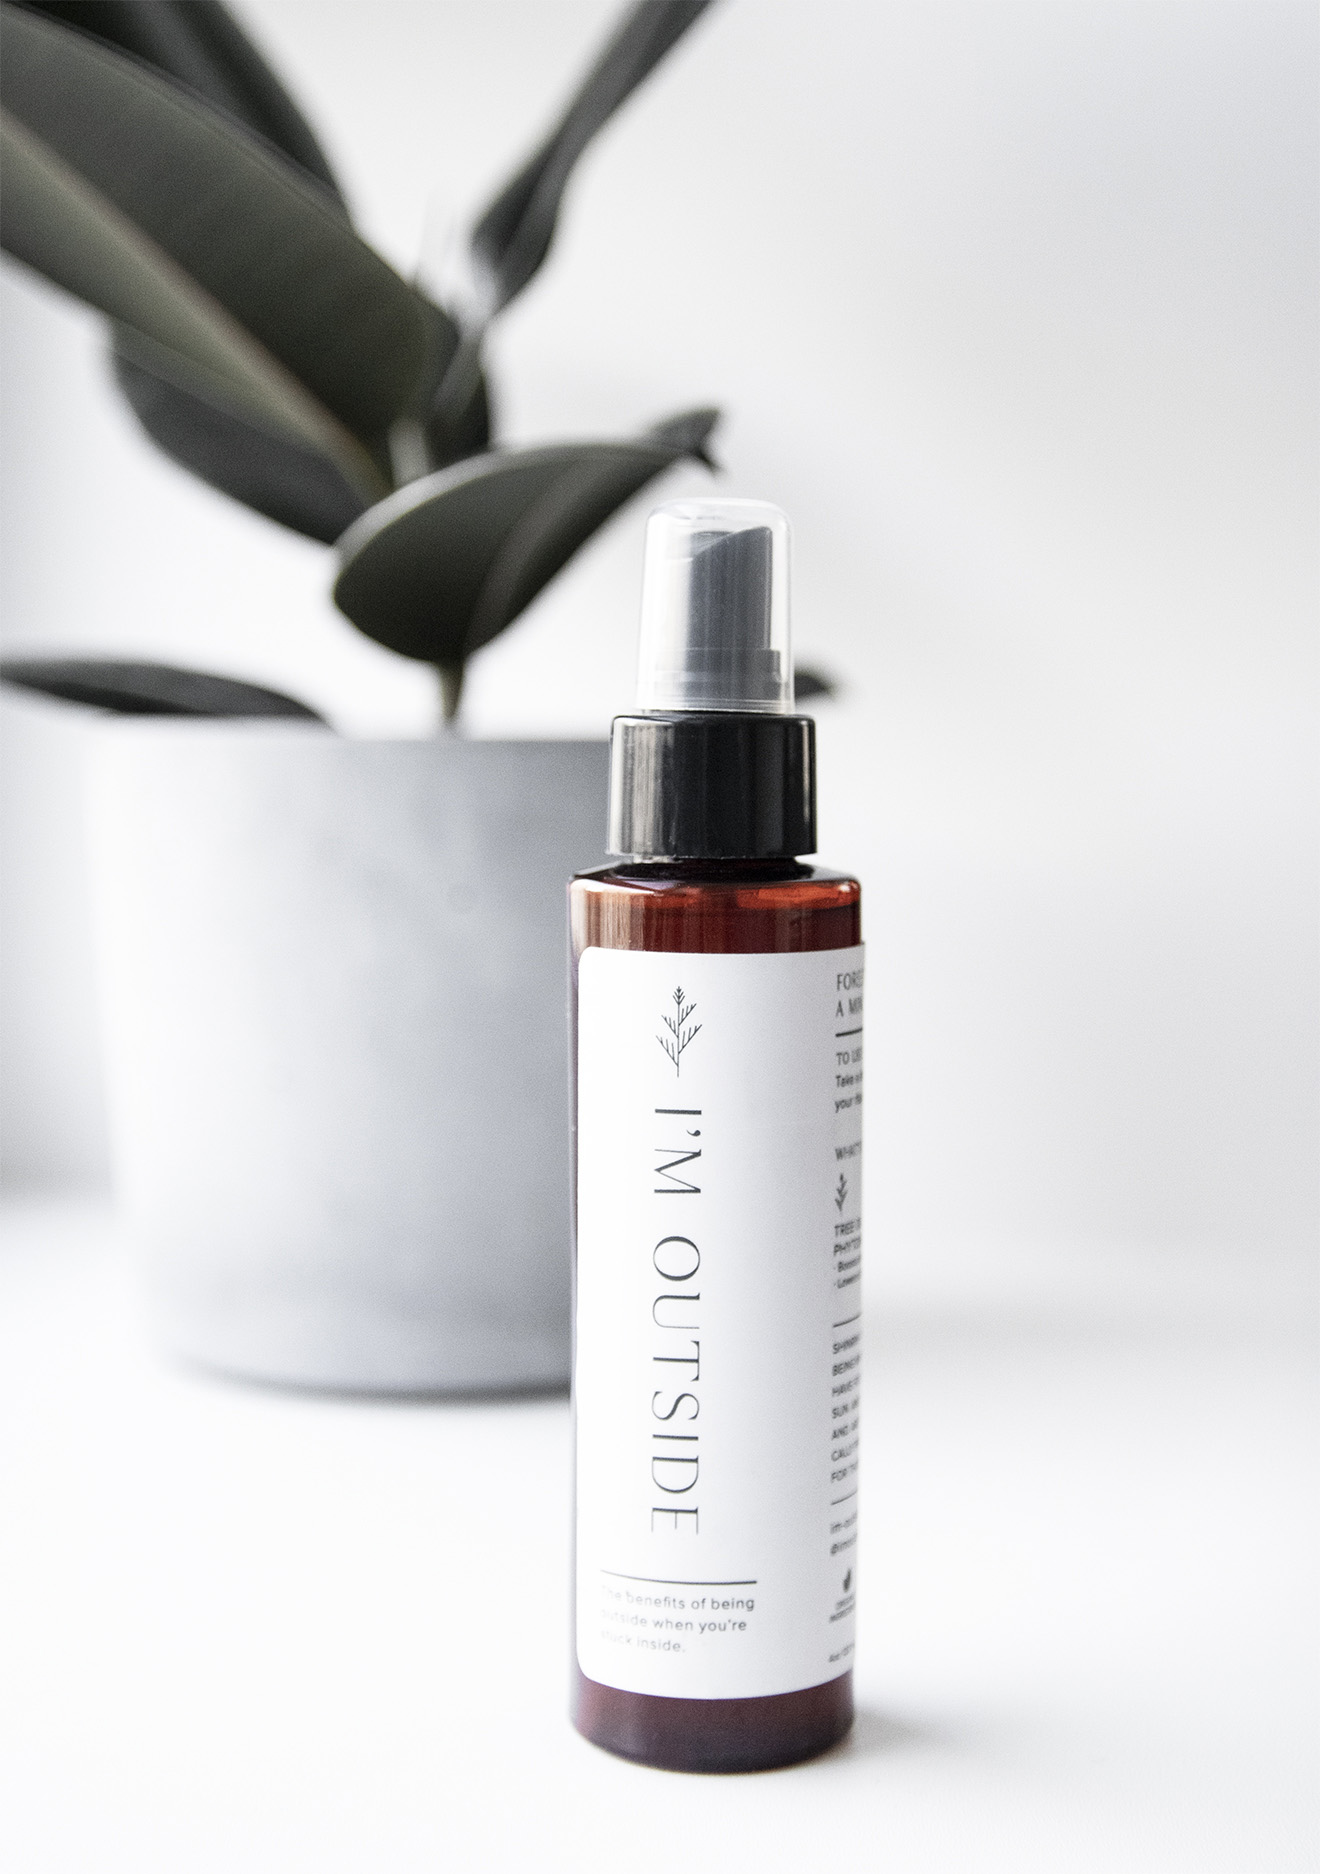 Im-Outside-Face-and-Body-Mist